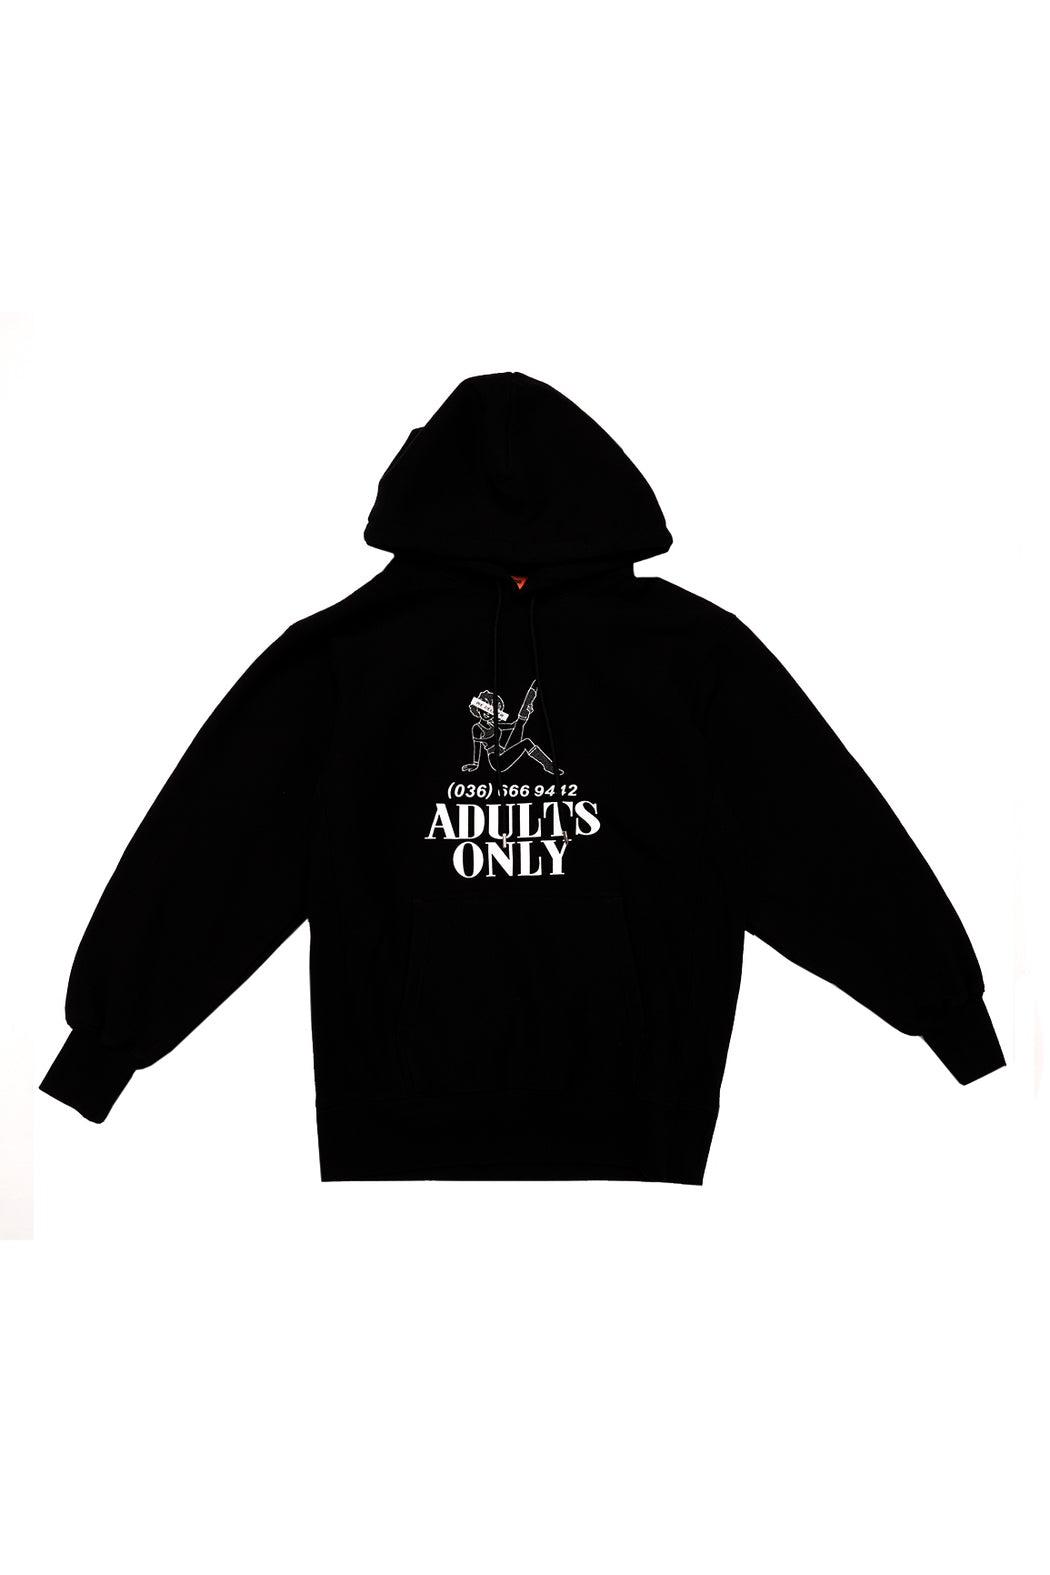 Adults Only Sweatshirt - Black